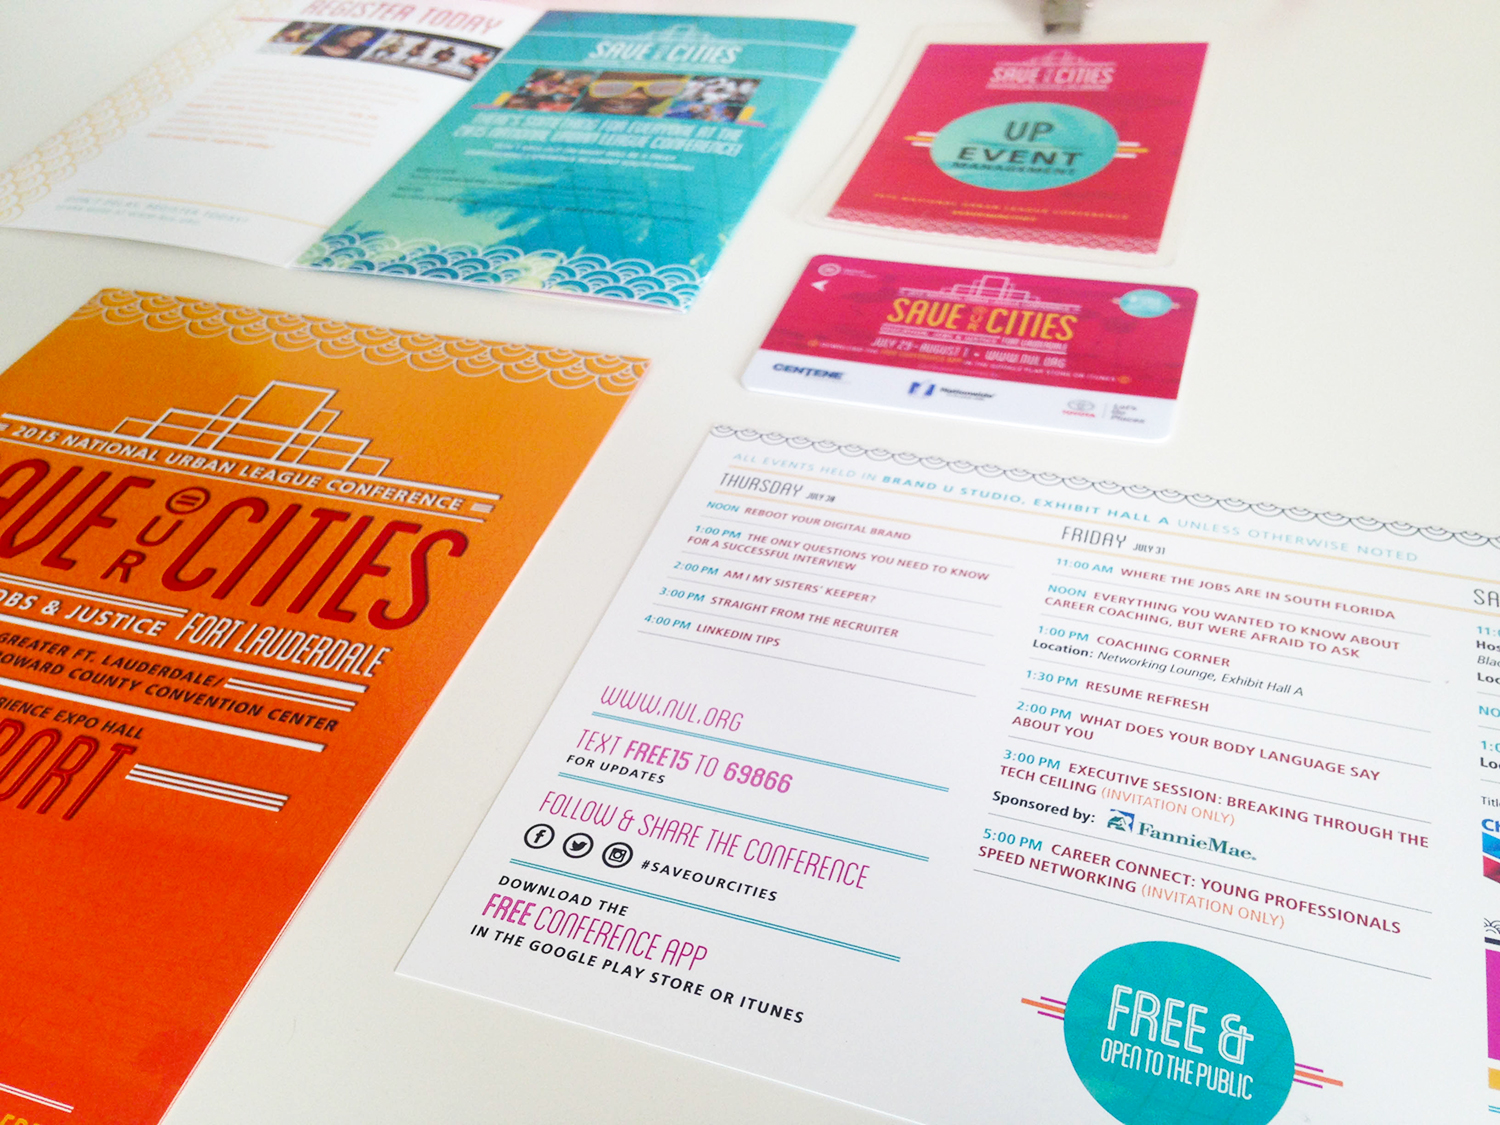 julierado-2015-national-urban-league-conference-collateral-fs-11.jpg